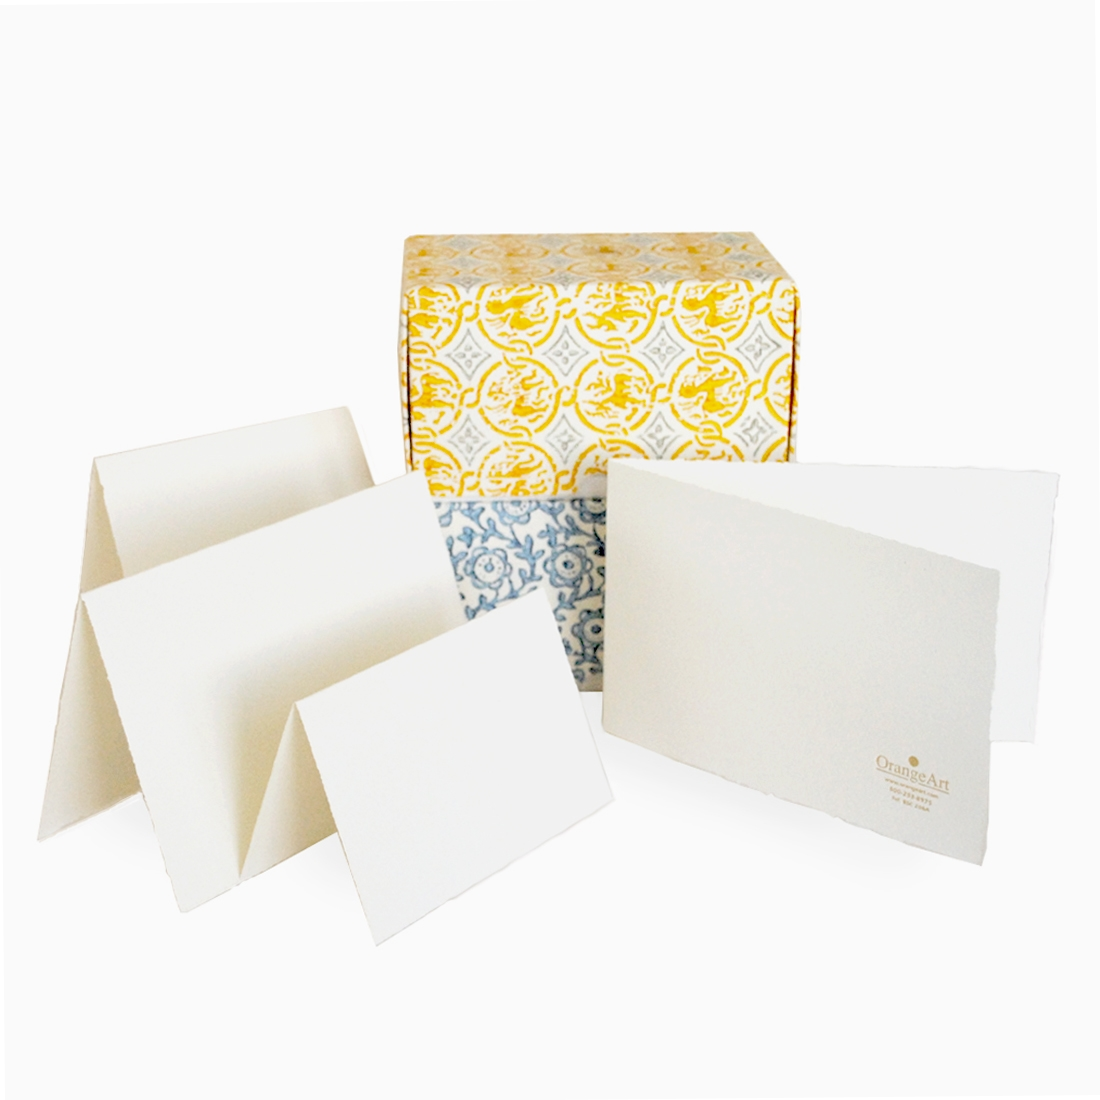 Medioevalis Folded Cards - RSBS-FOLD